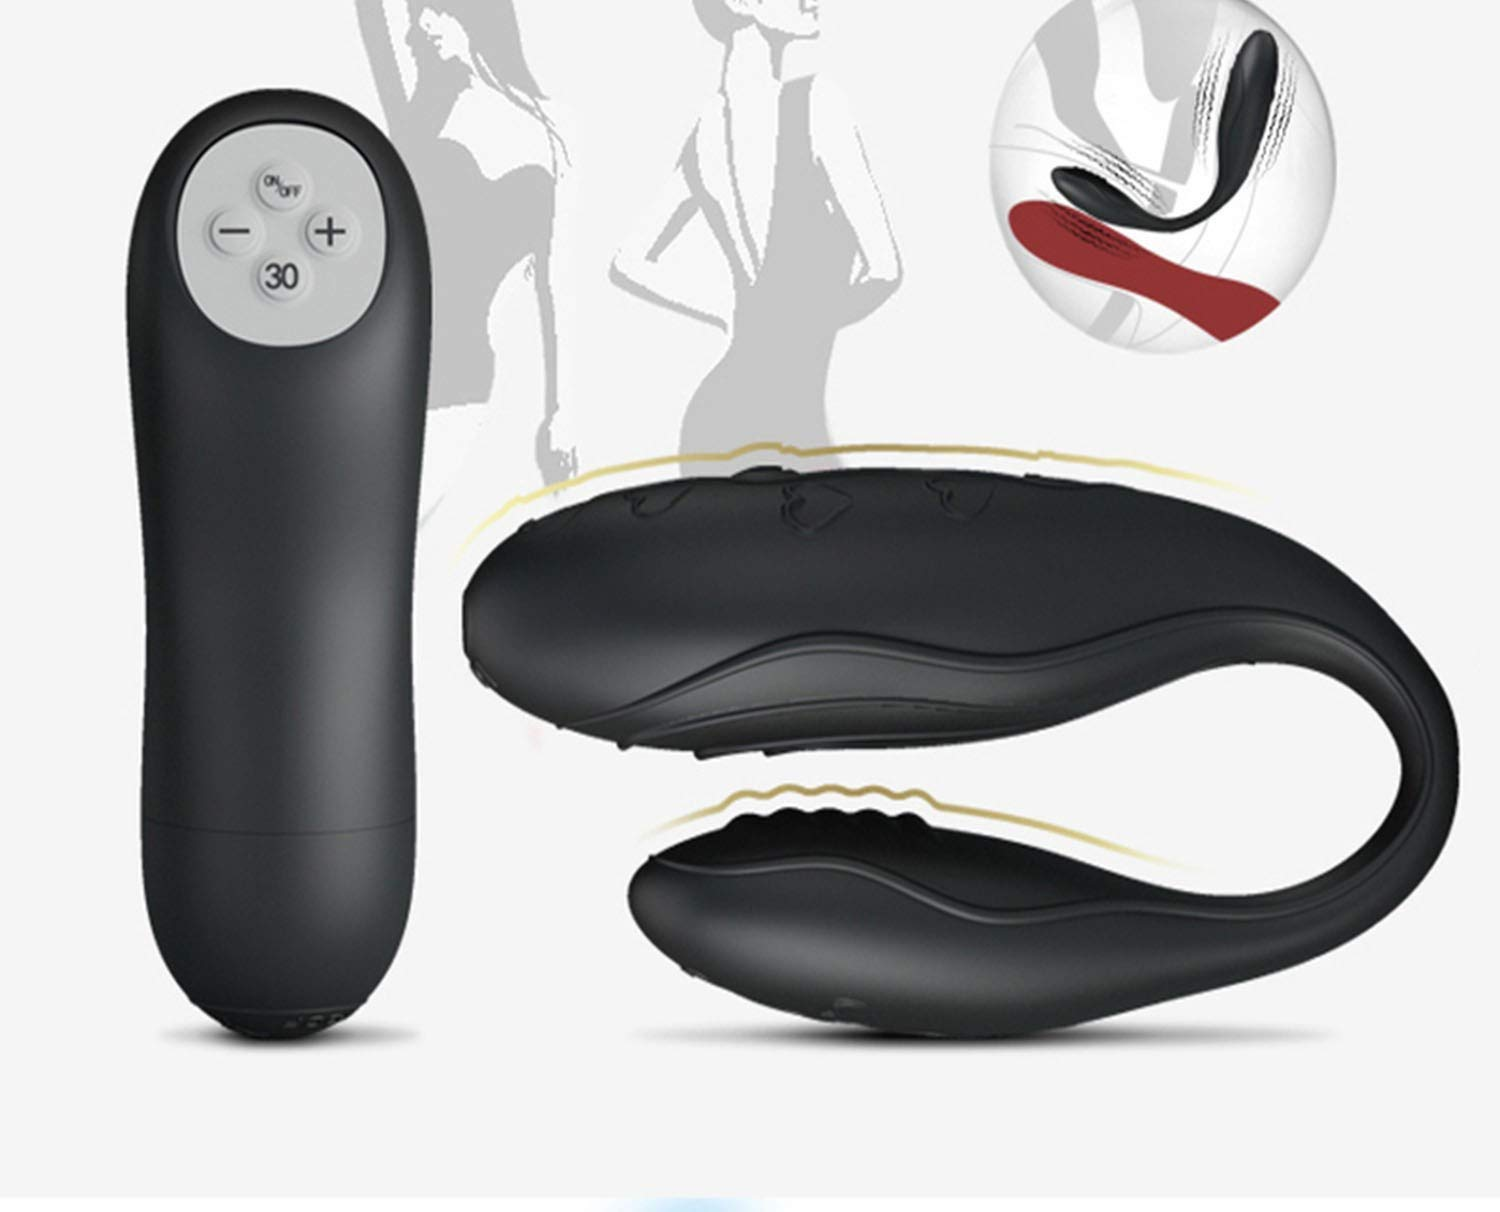 Love Owner Tshirt Vibrating Bullet Baile Indulgence Wireless Remote Control 3-Speed Plus 30 Function Vibrator We Design Vibe 4 Adult for Couples,with Box,30 Speed Dual Vibration G Spot Vibrators YA